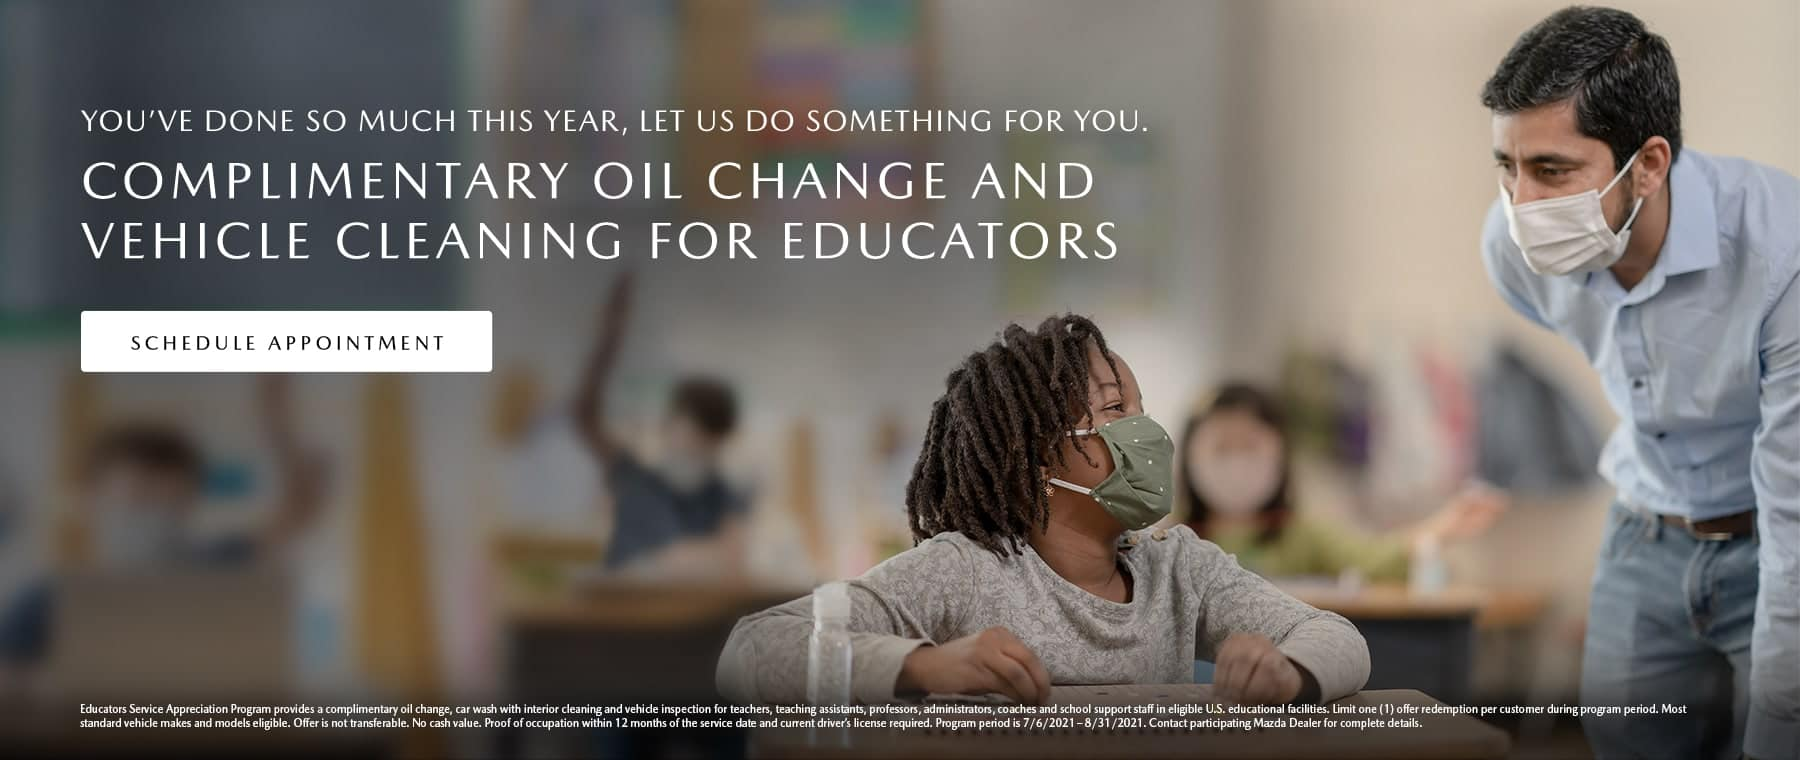 Complimentary Oil Change and Vehicle Cleaning for Educators